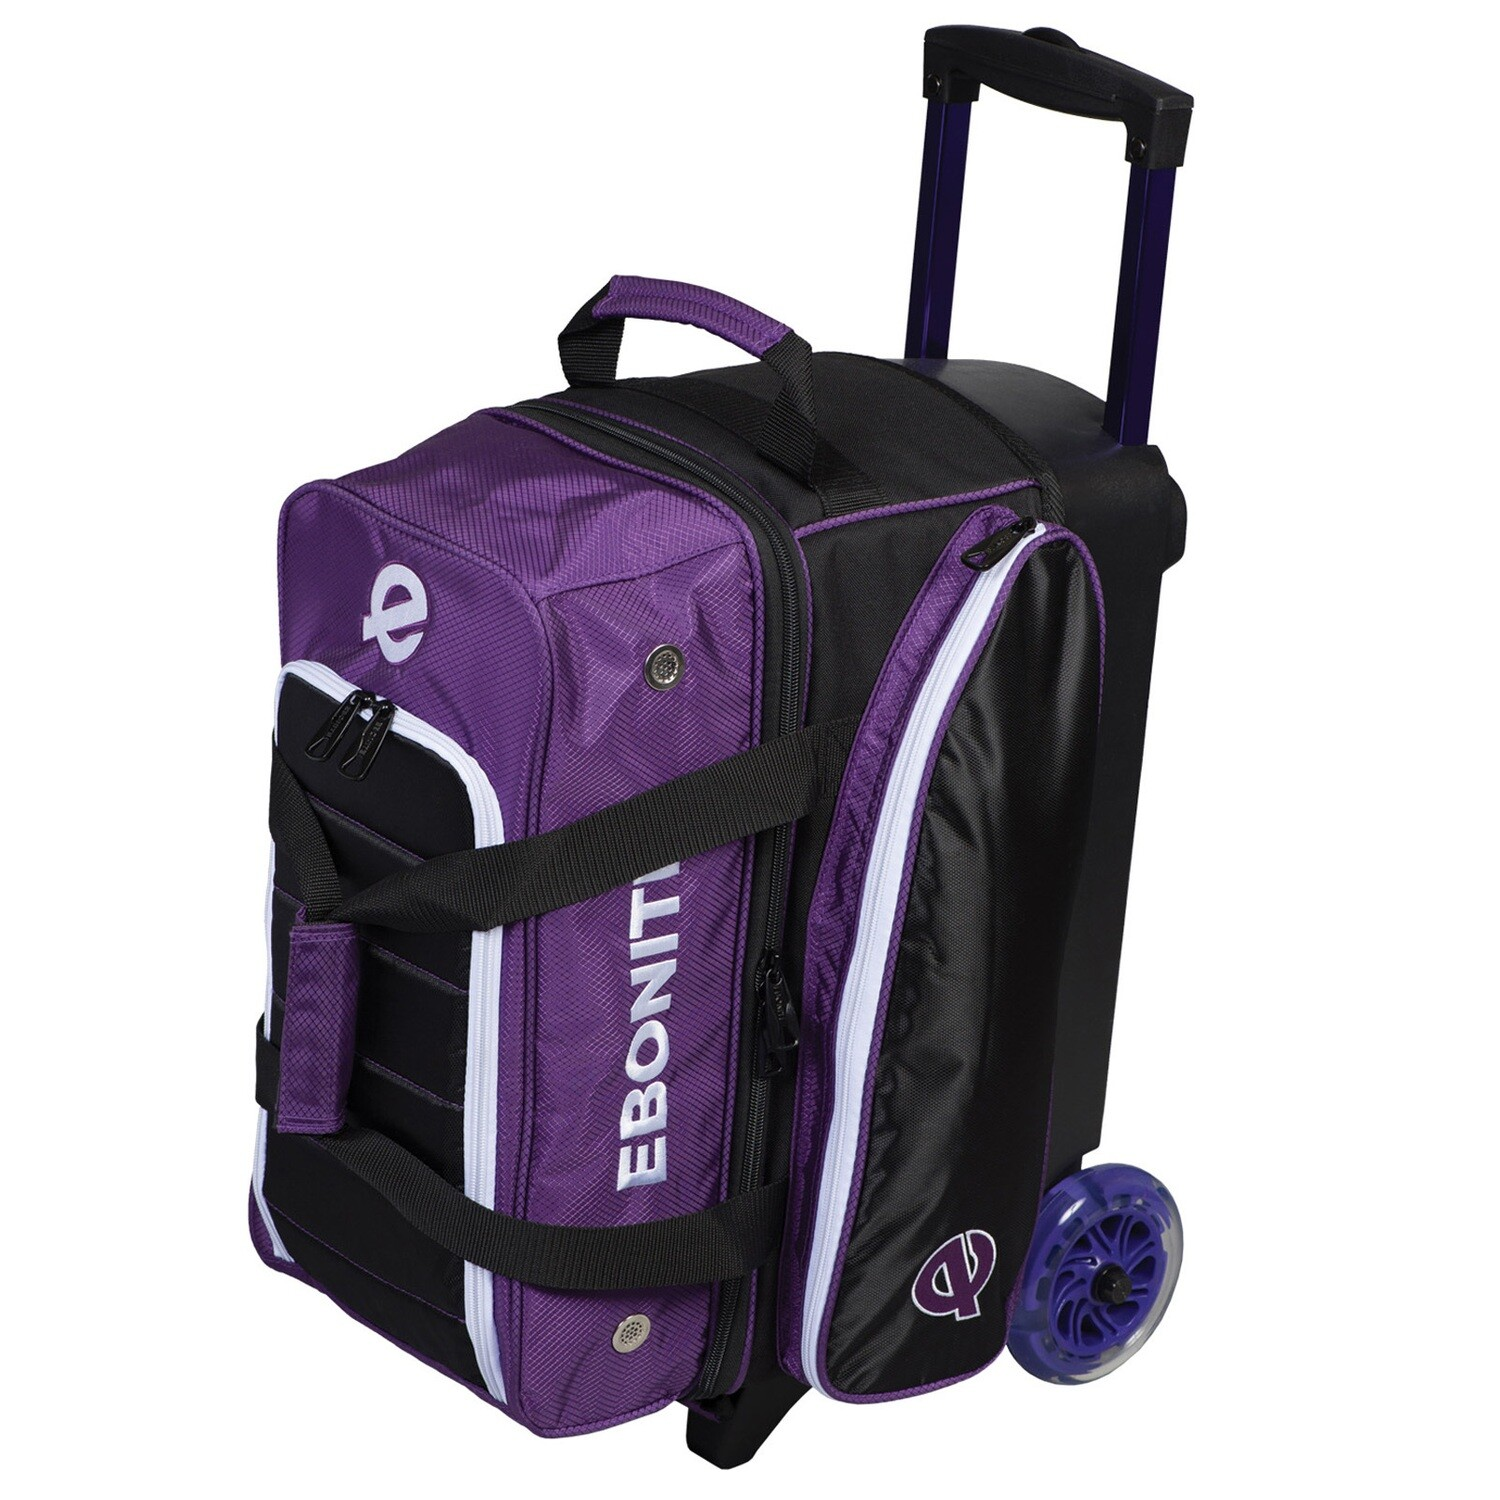 Ebonite Eclipse Purple 2 Ball Roller Bowling Bag